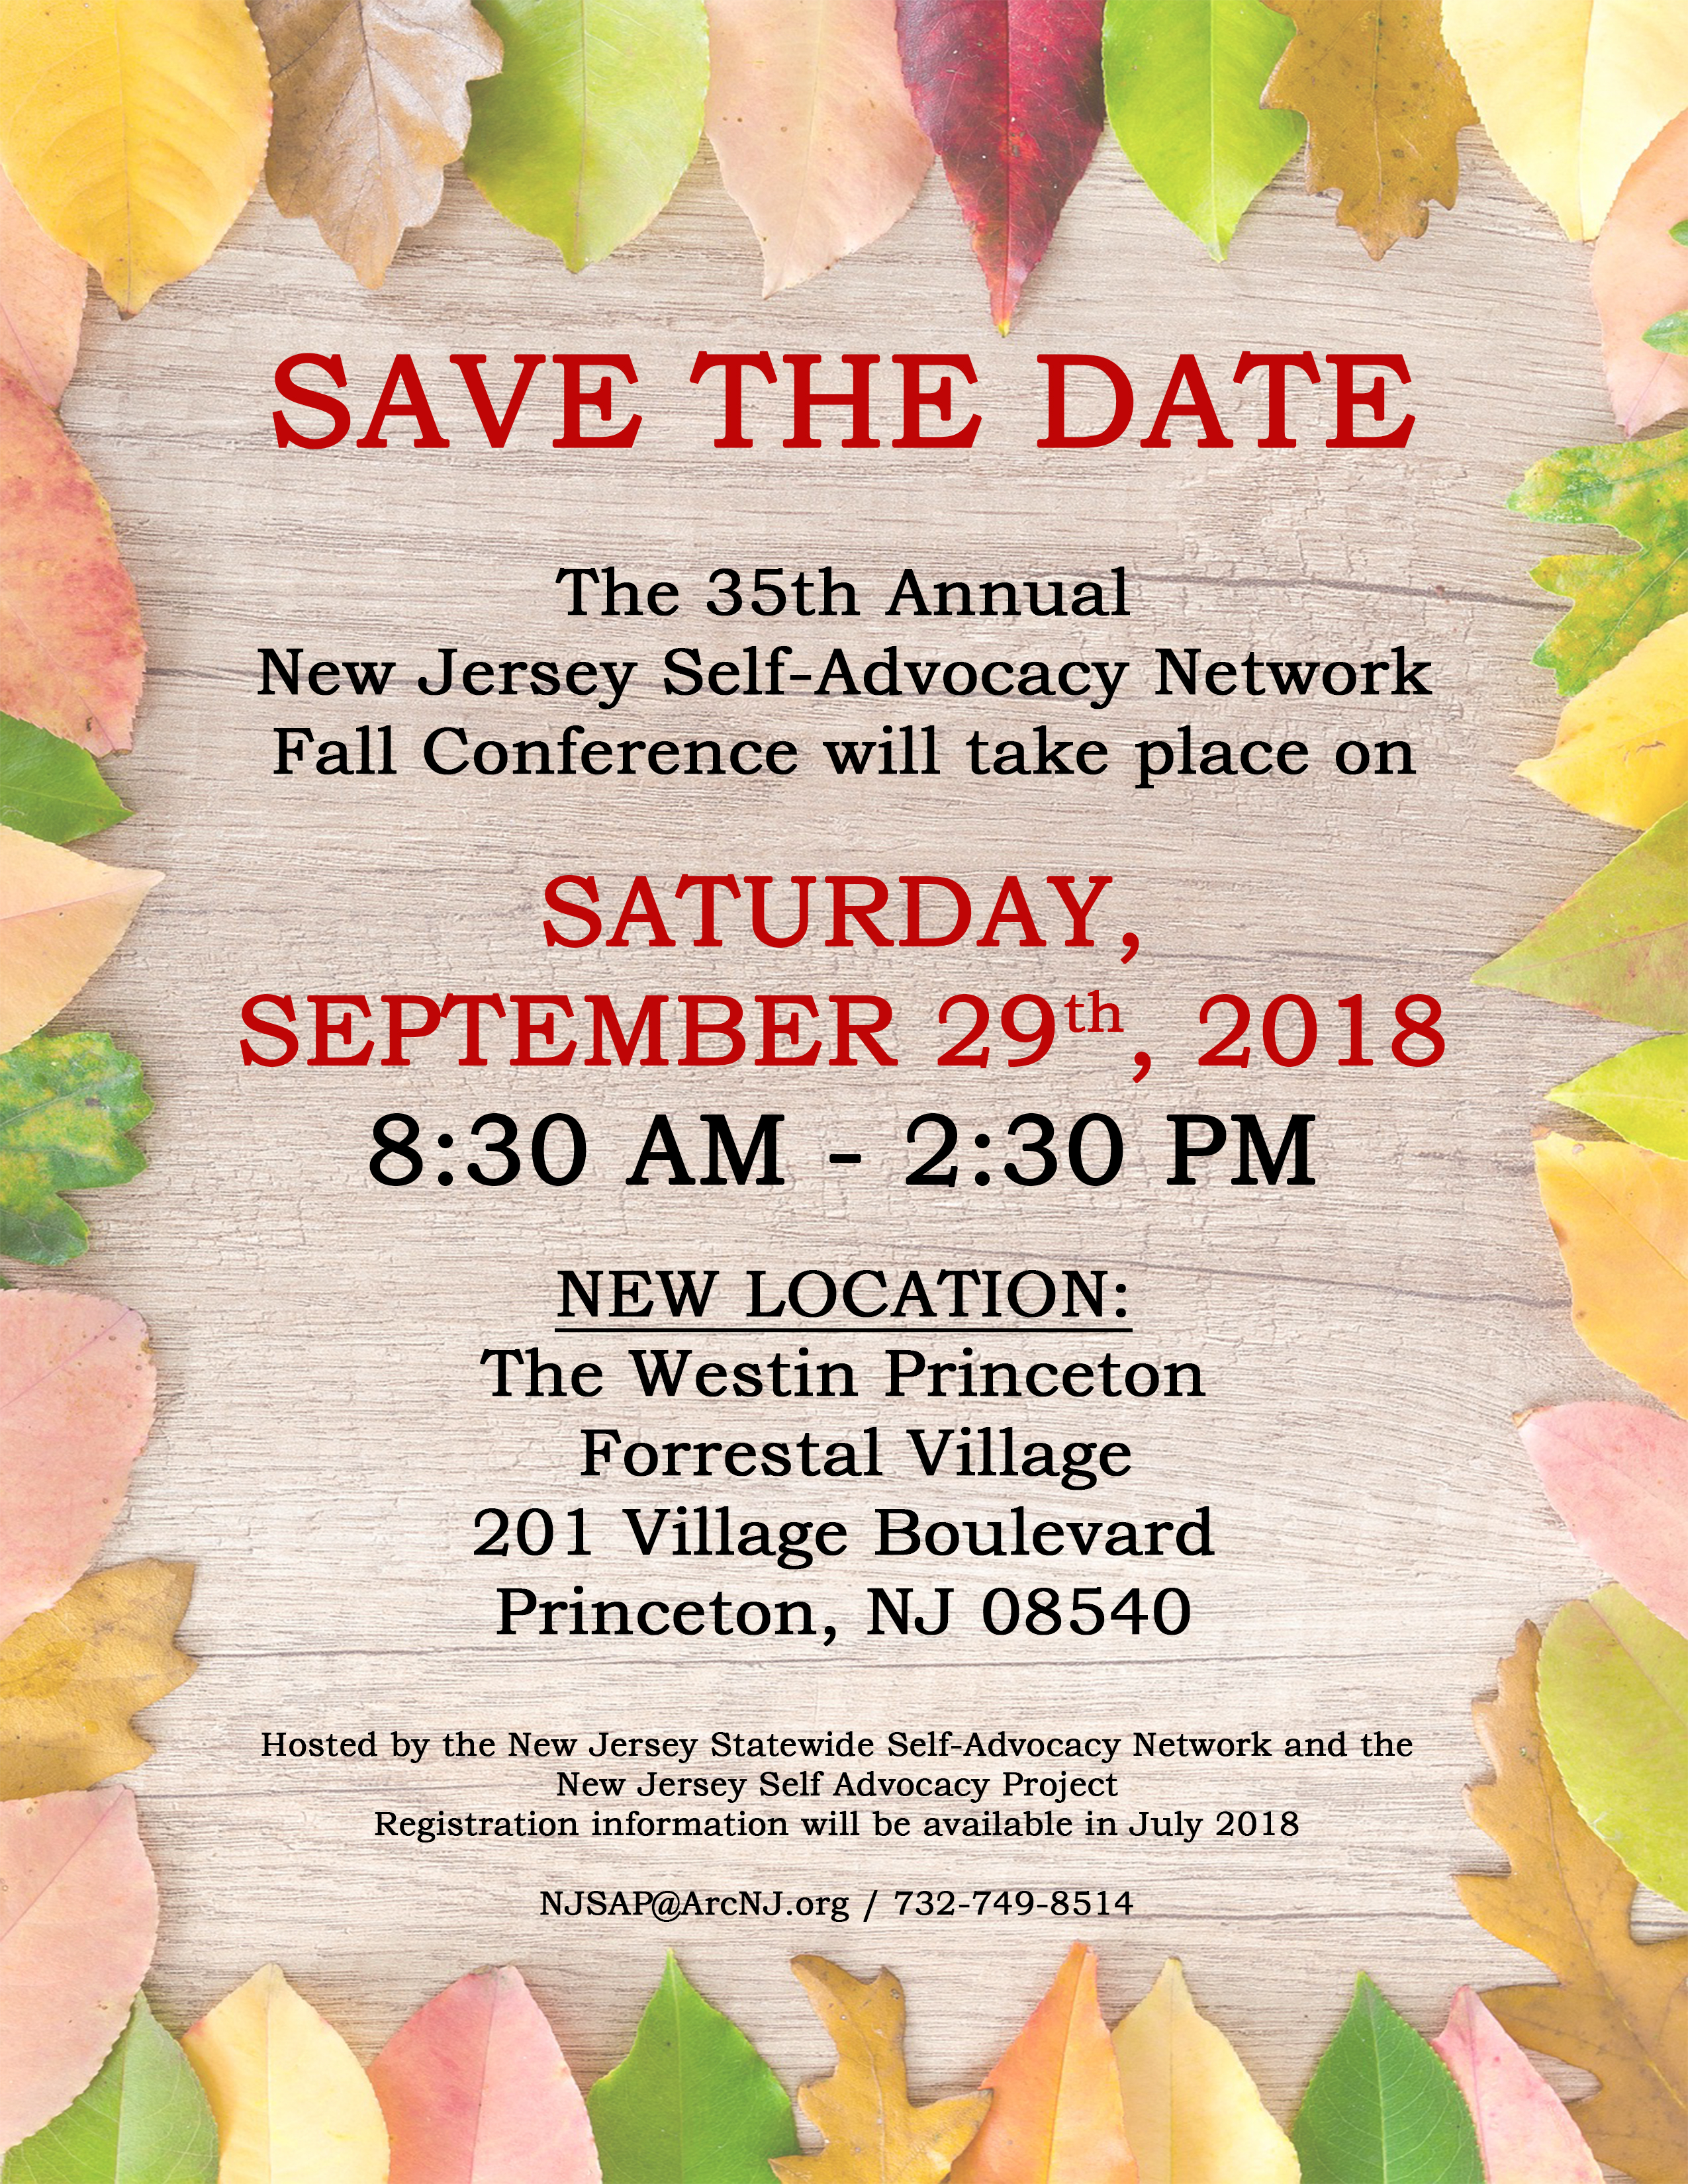 2018 Fall Conference Save the Date